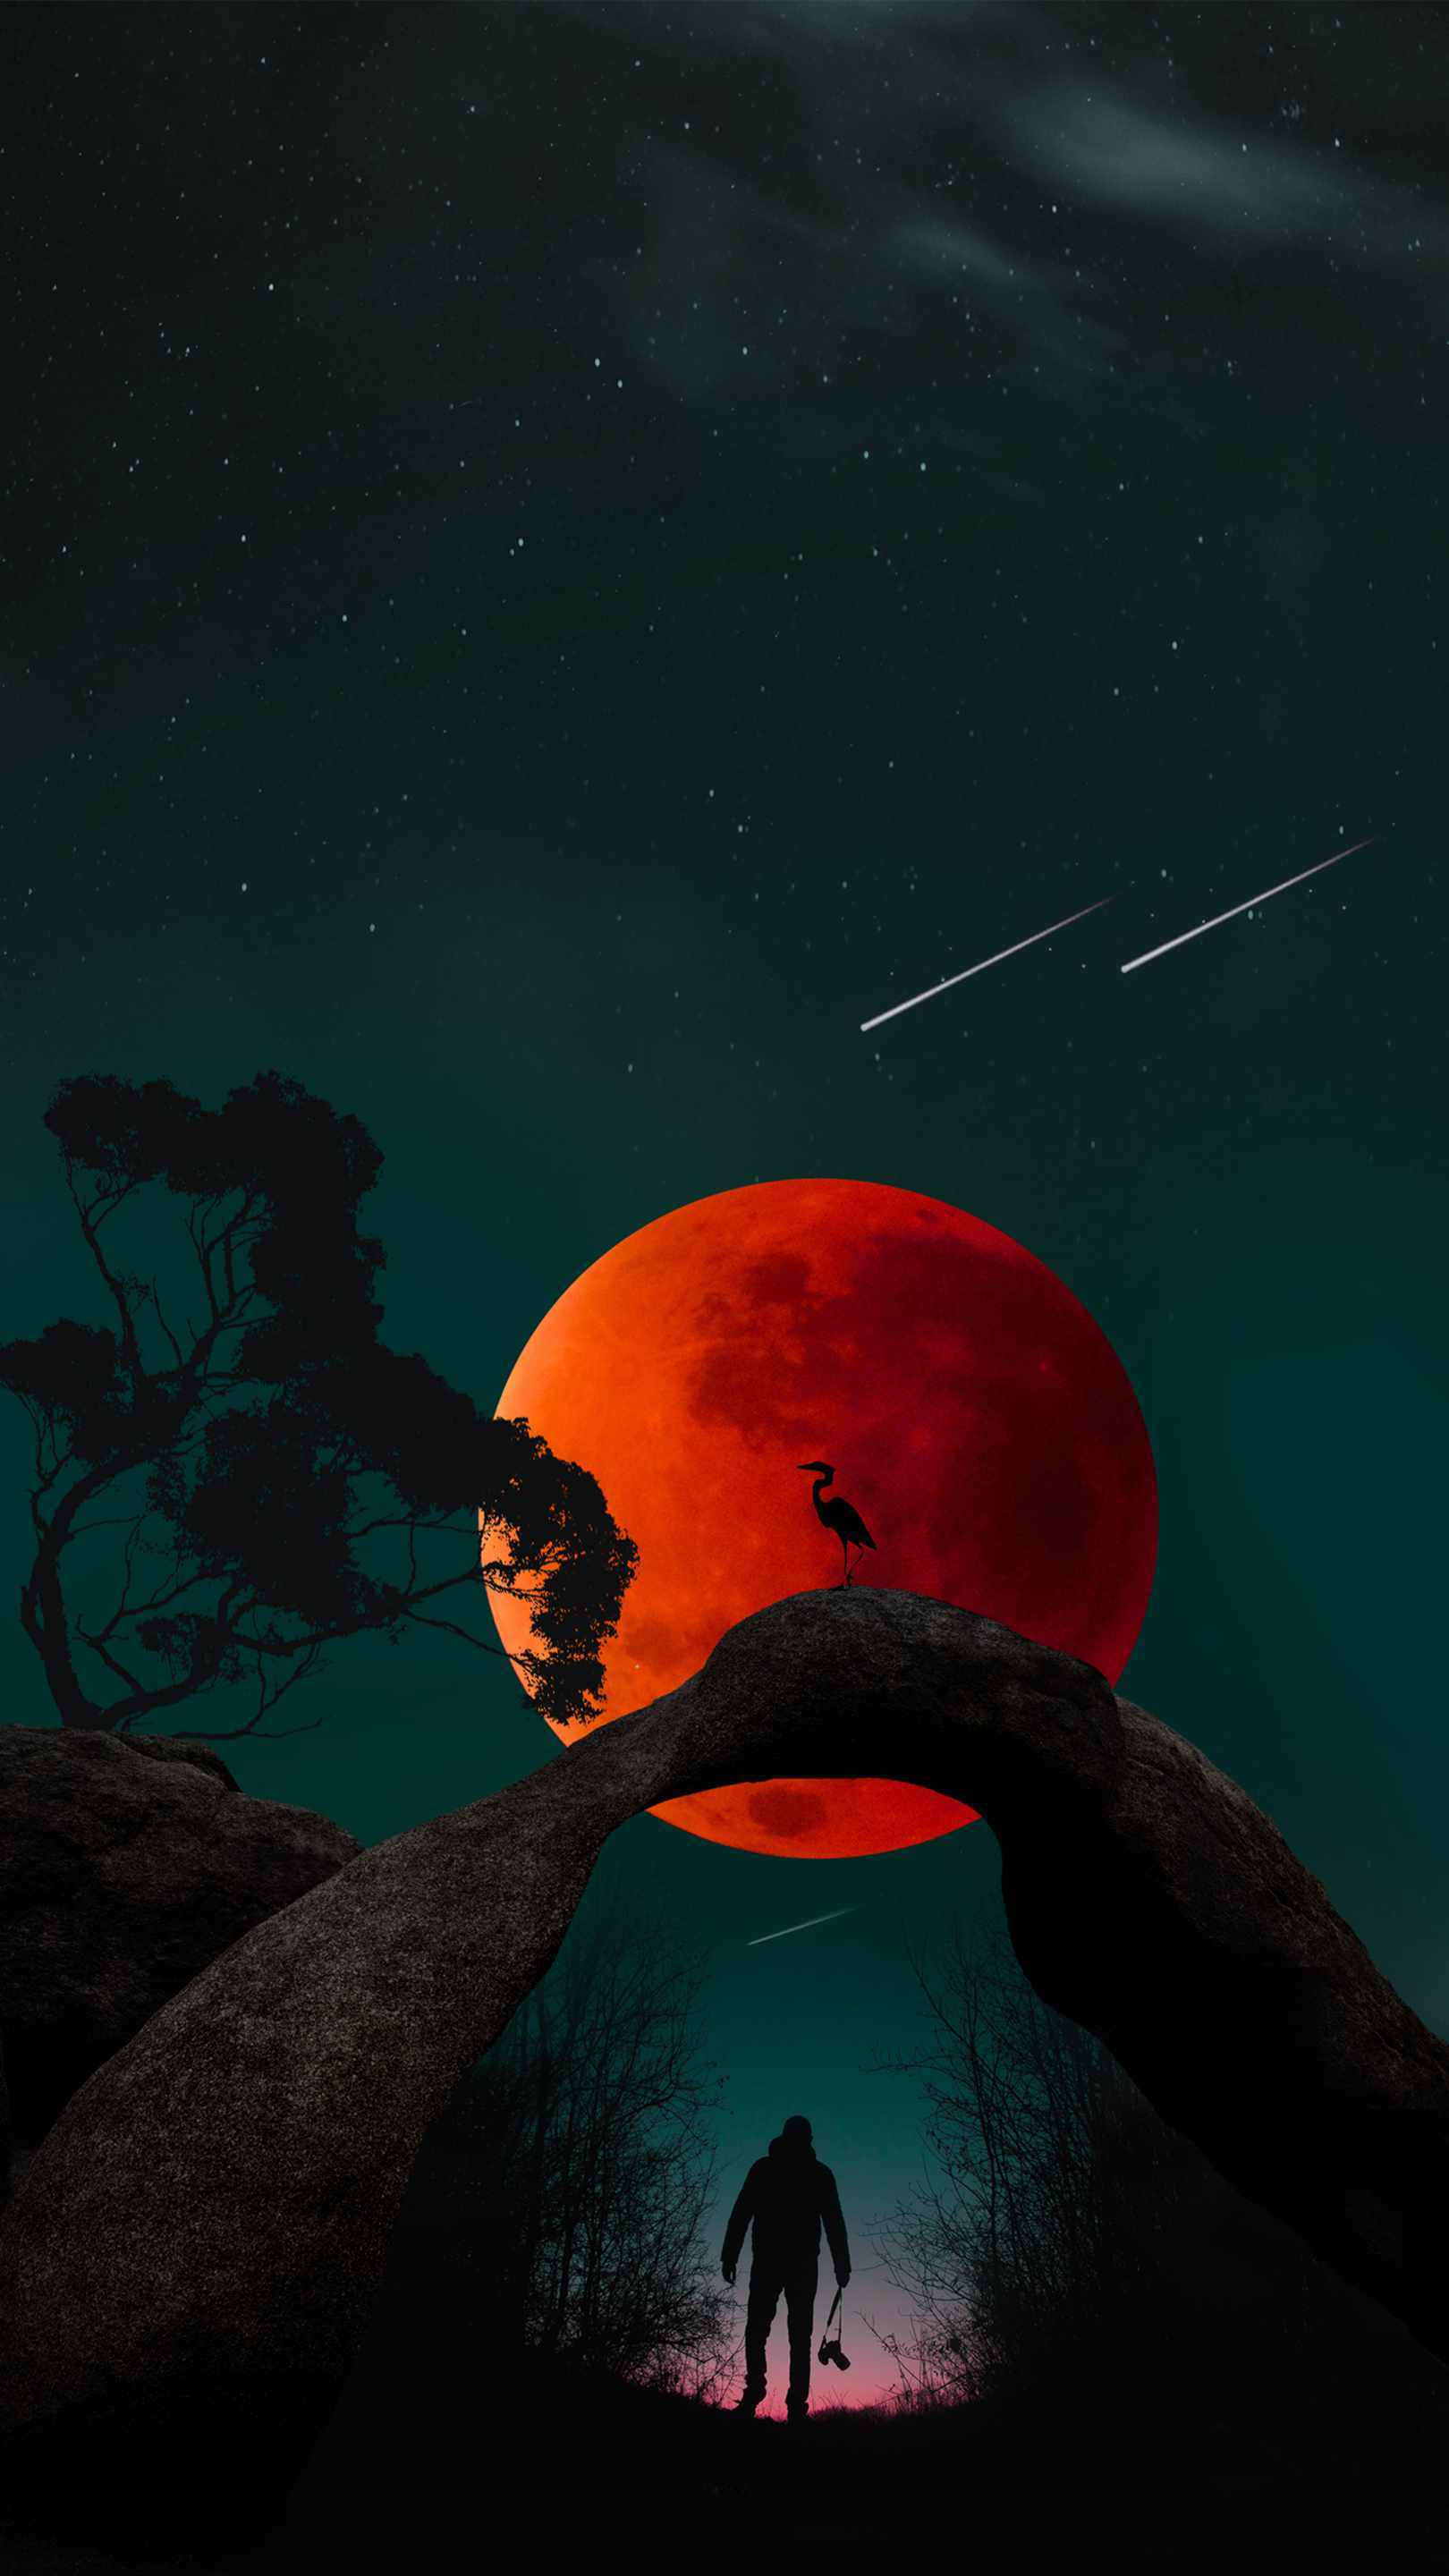 Blood Moon and Man iPhone Wallpaper